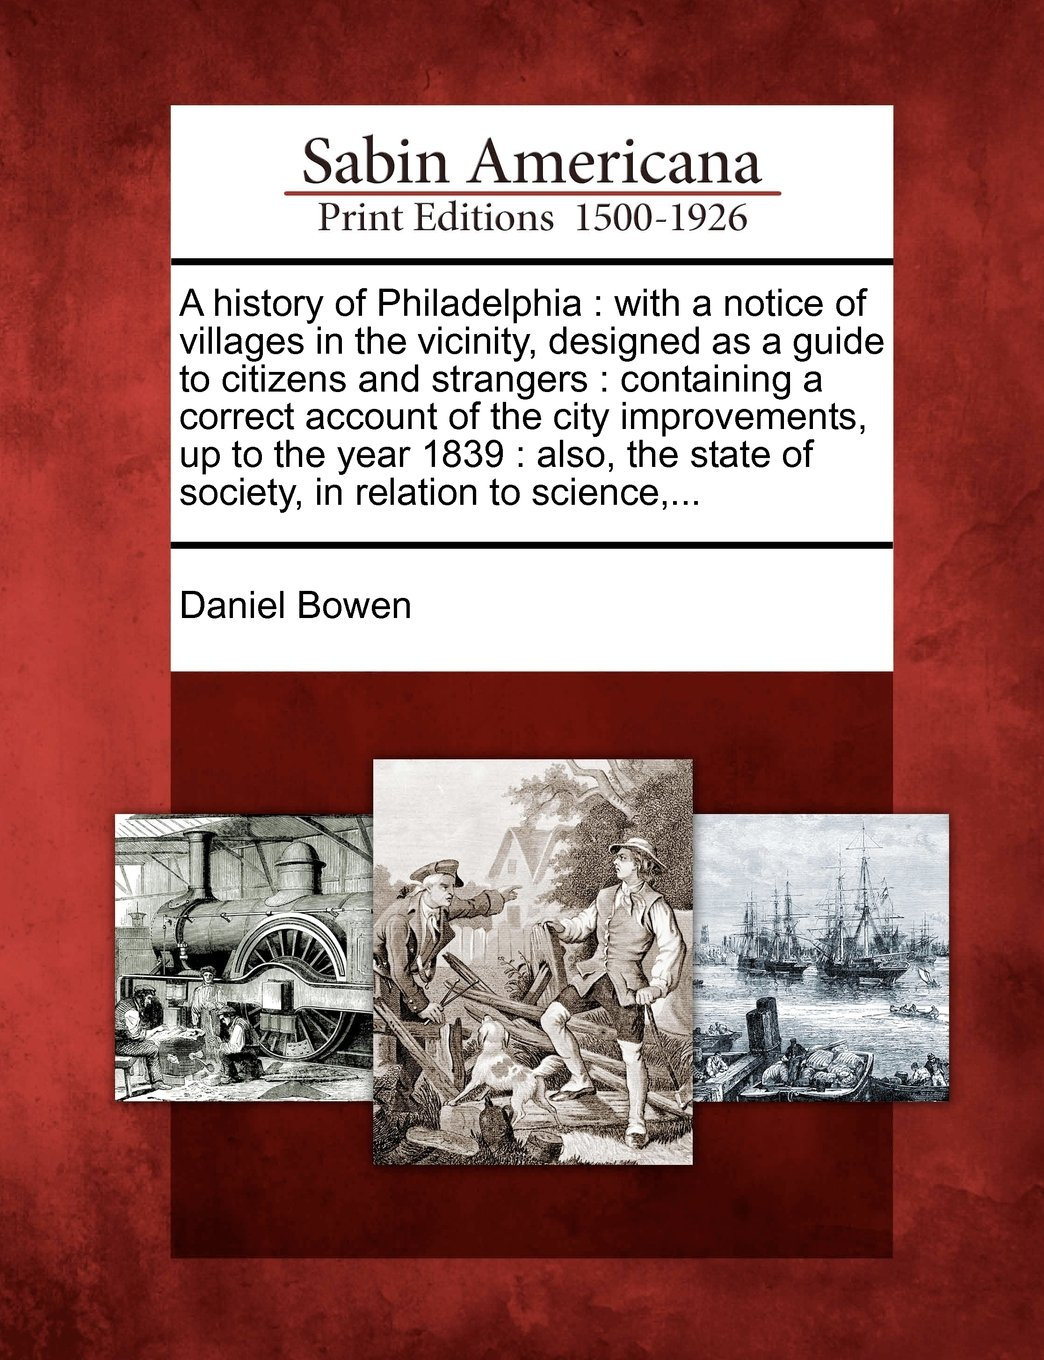 A history of Philadelphia: with a notice of villages in the vicinity, designed as a guide to citizens and strangers : containing a correct account of ... state of society, in relation to science,... pdf epub